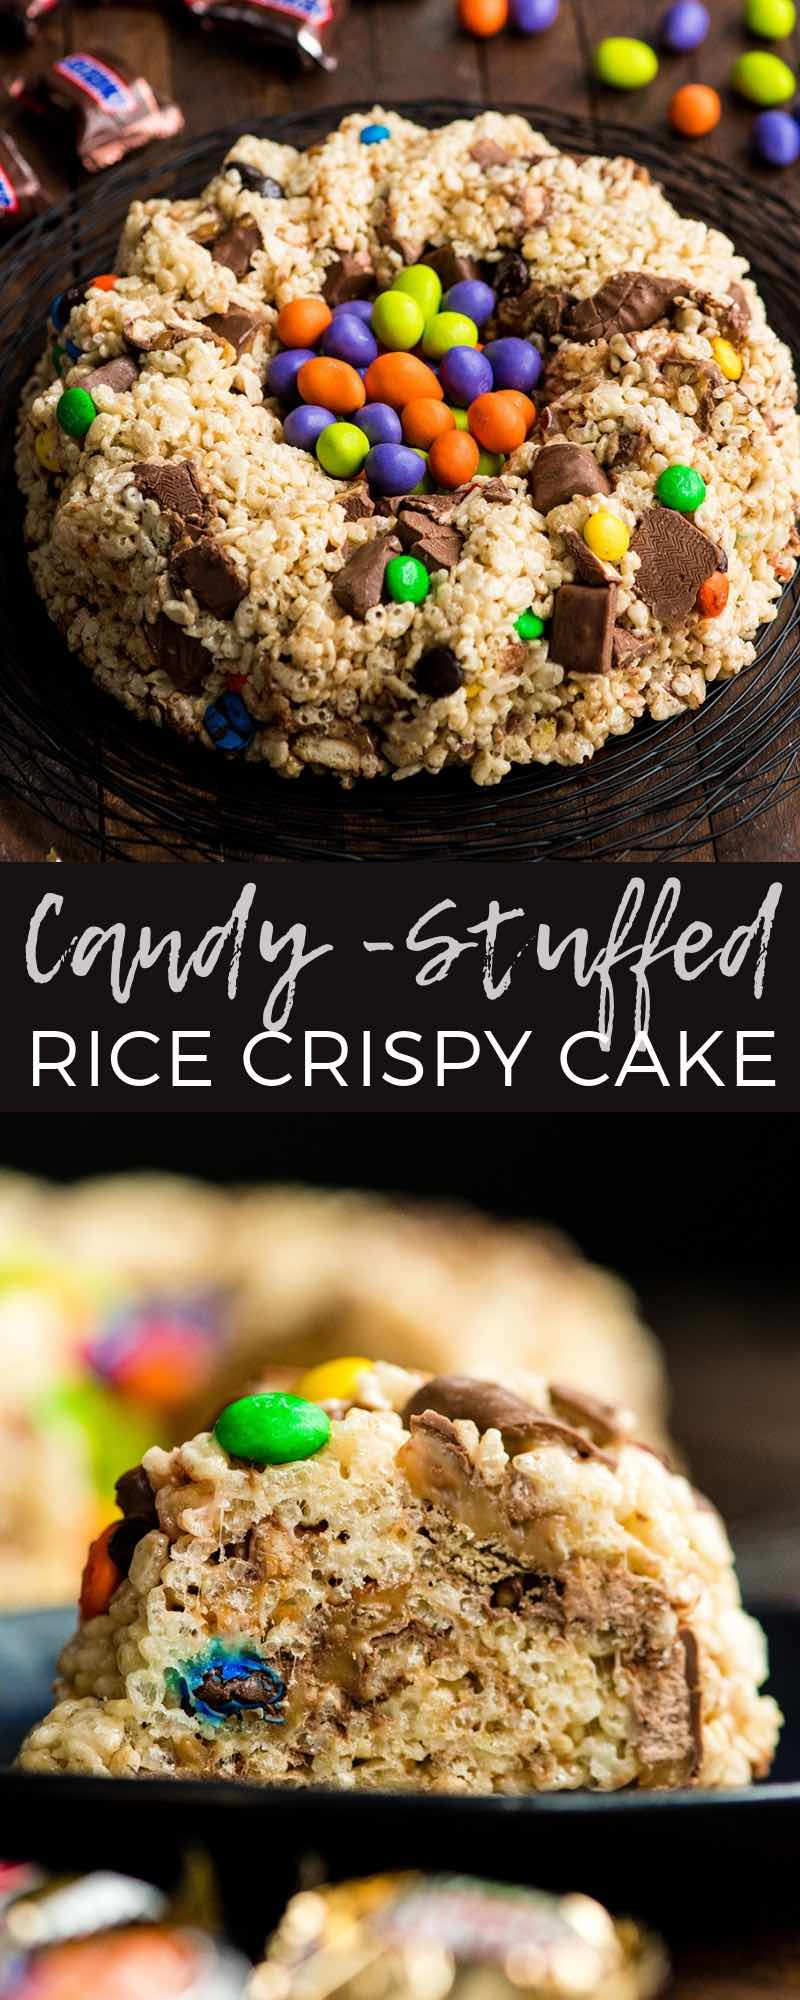 This Candy-Stuffed Rice Crispy Cake is an easy dessert recipe that is perfect for entertaining! It's made with 5 ingredients and comes together in 10 minutes! A great recipe to use up all your leftover Halloween candy! #sponsored #halloween #bundtcake #ricecrispycake #ricecrispytreats #dessert #halloweencandy #walmart @walmart